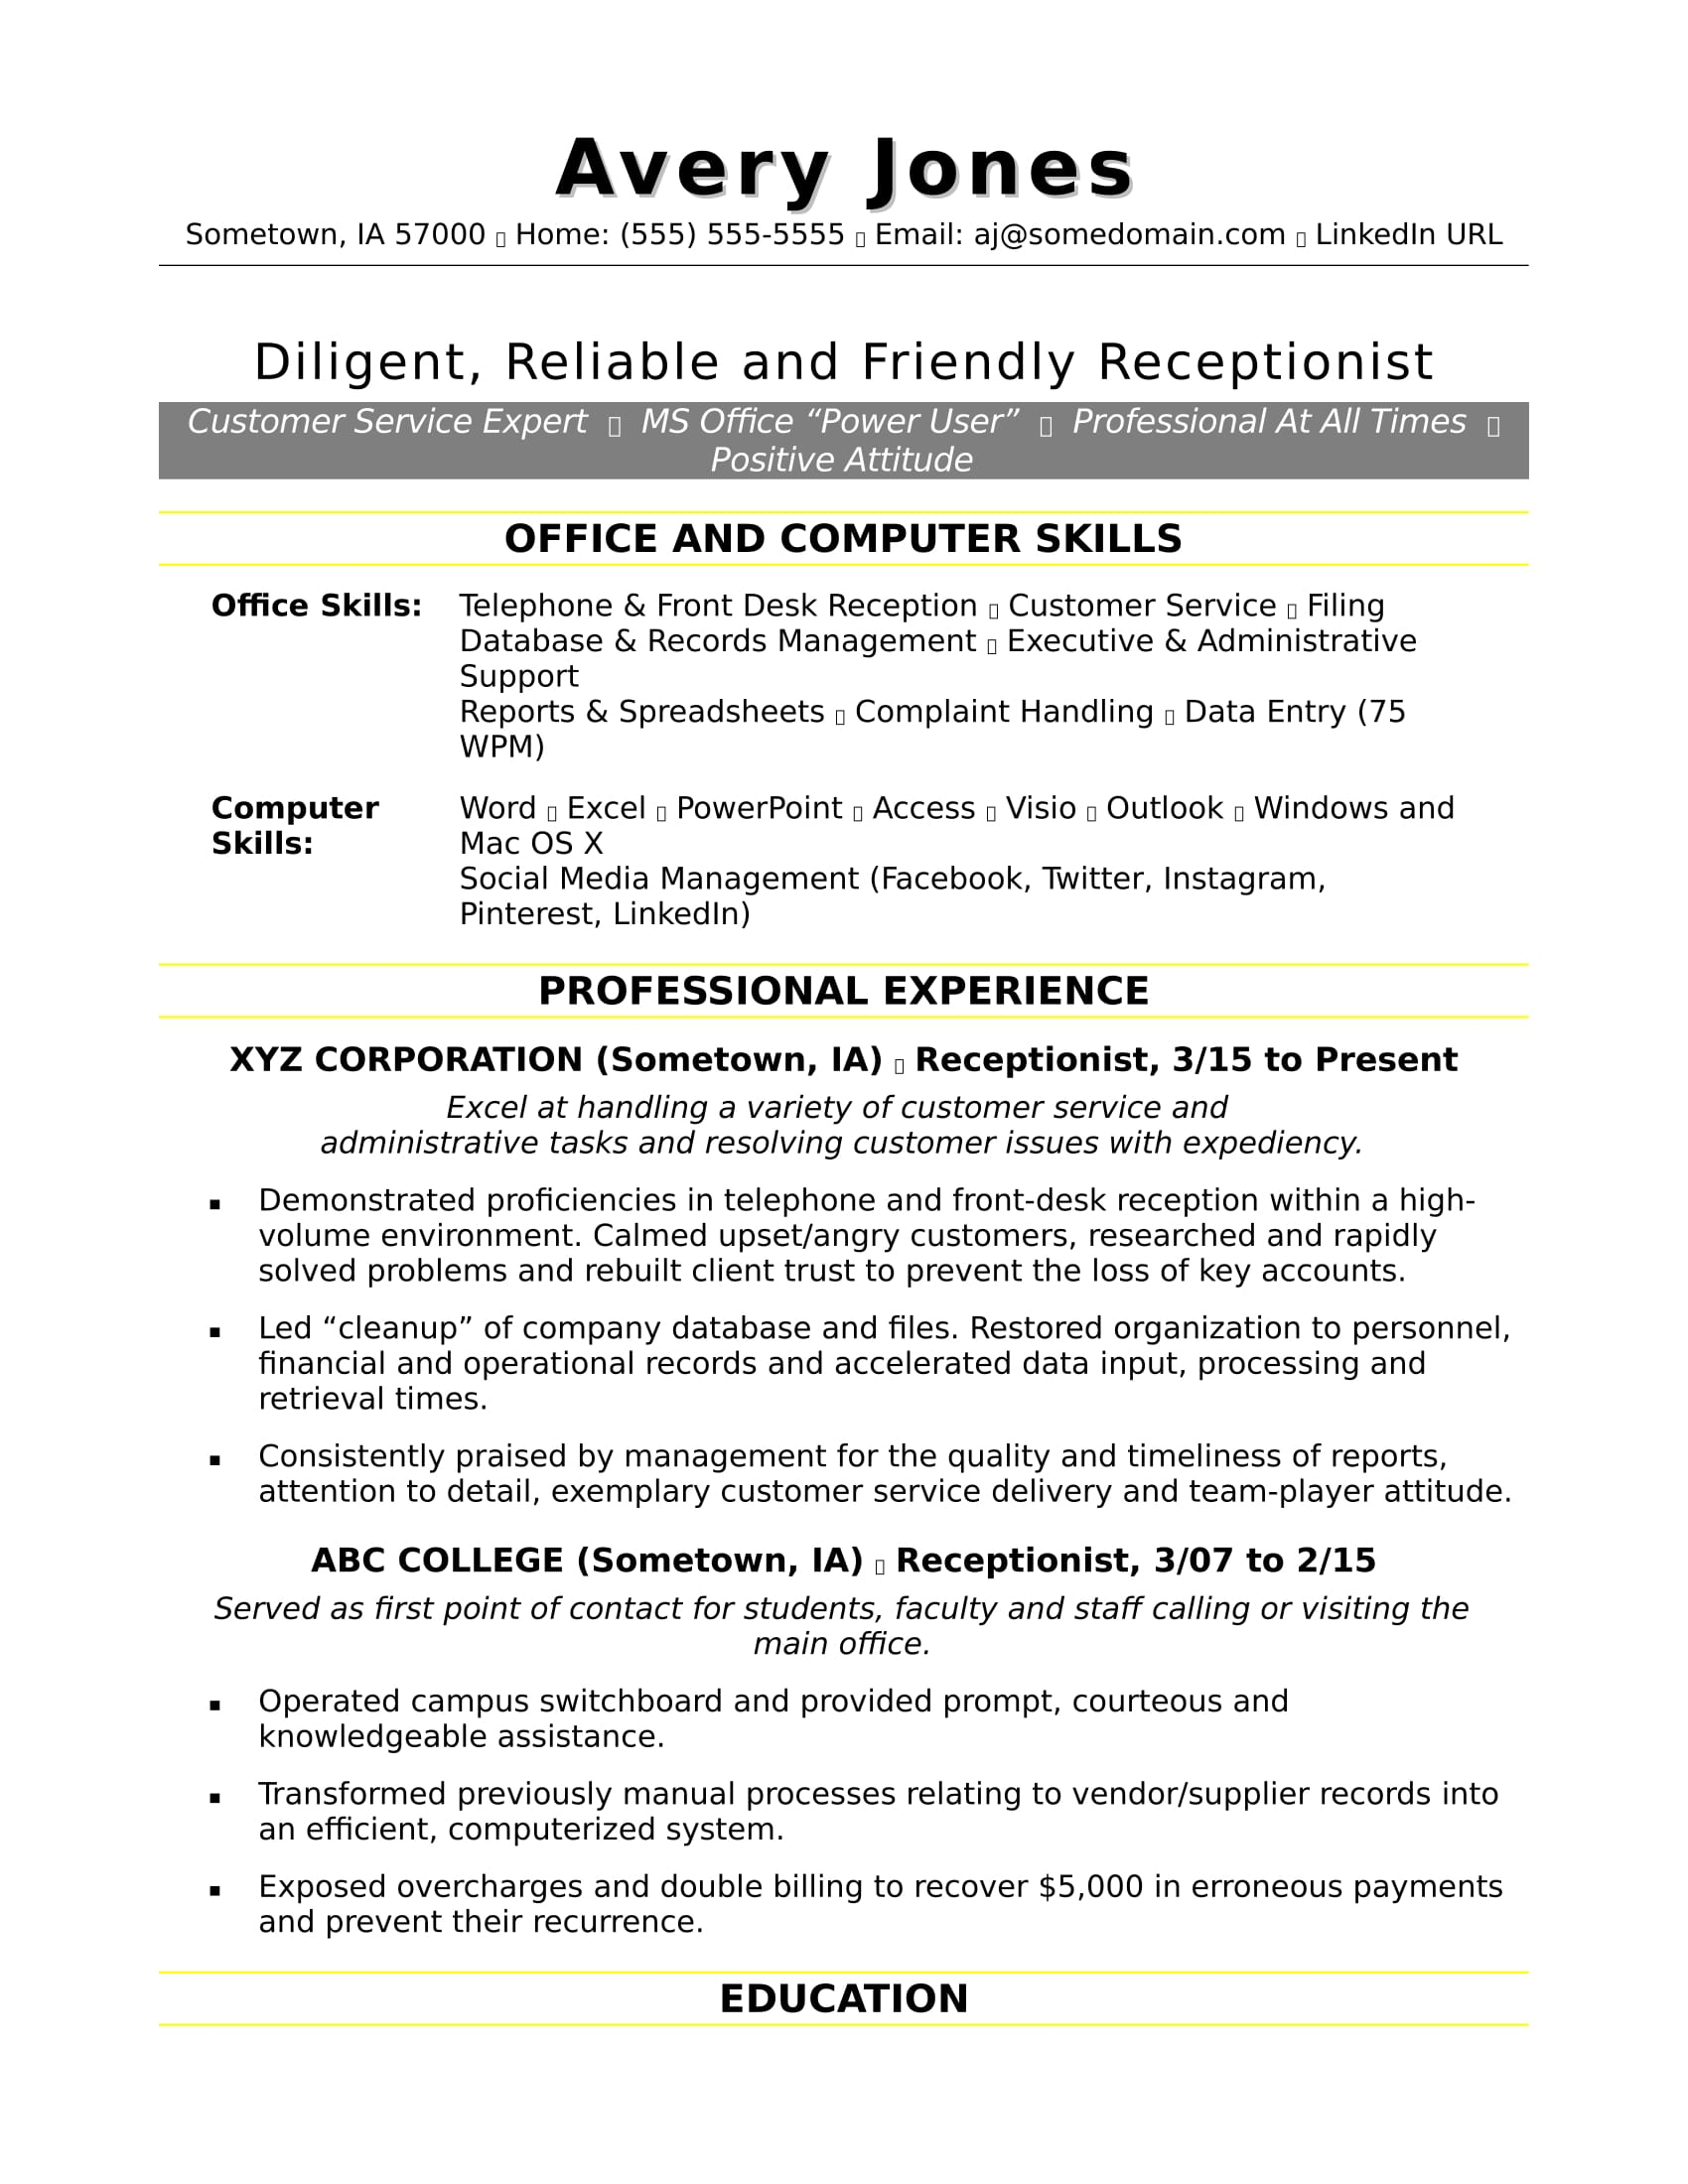 Sample Resume For A Receptionist  Words To Put On A Resume